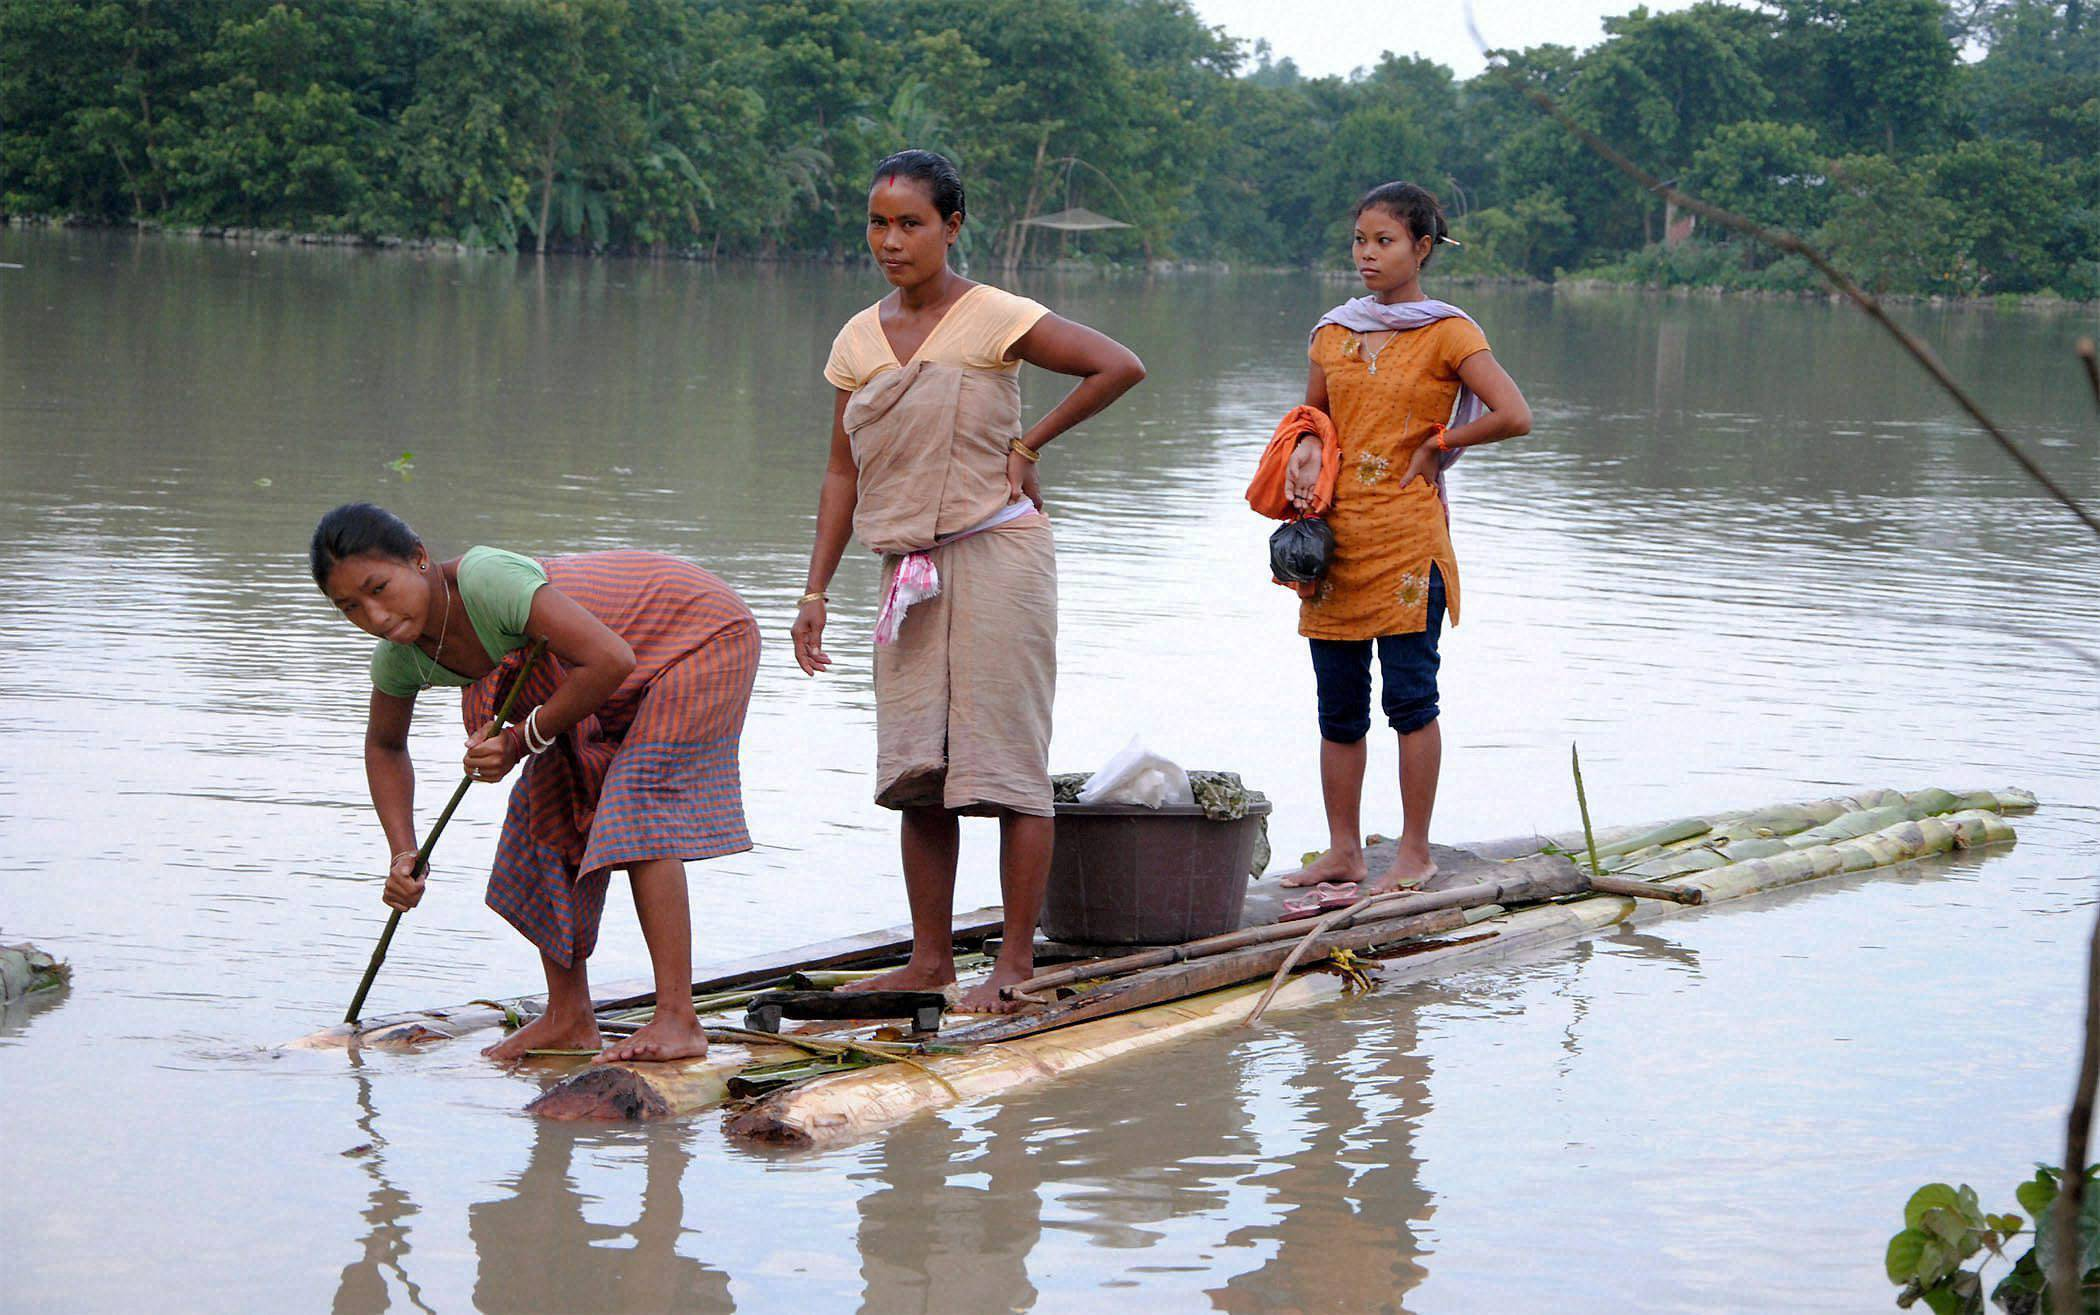 Assam Flood: Nearly 400,000 People Affected